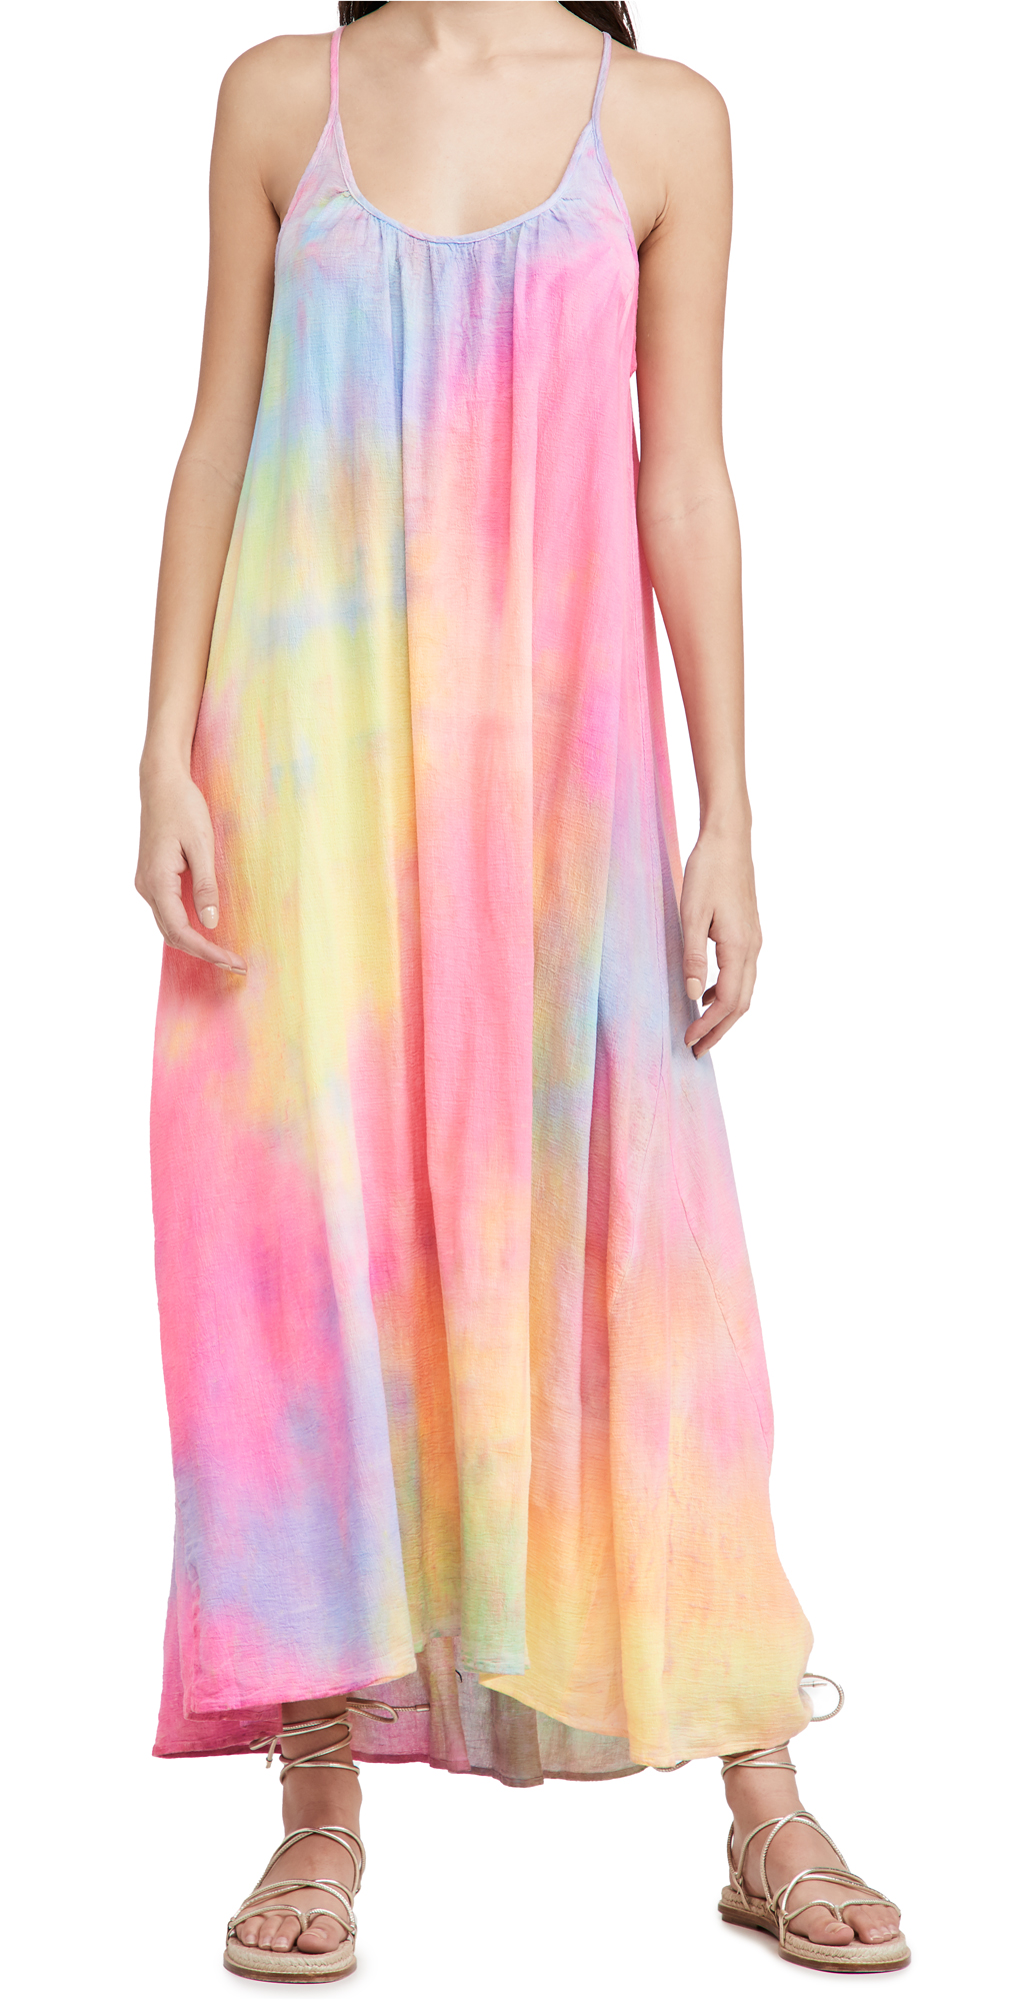 9seed Tulum Dress Neon Tie Dye